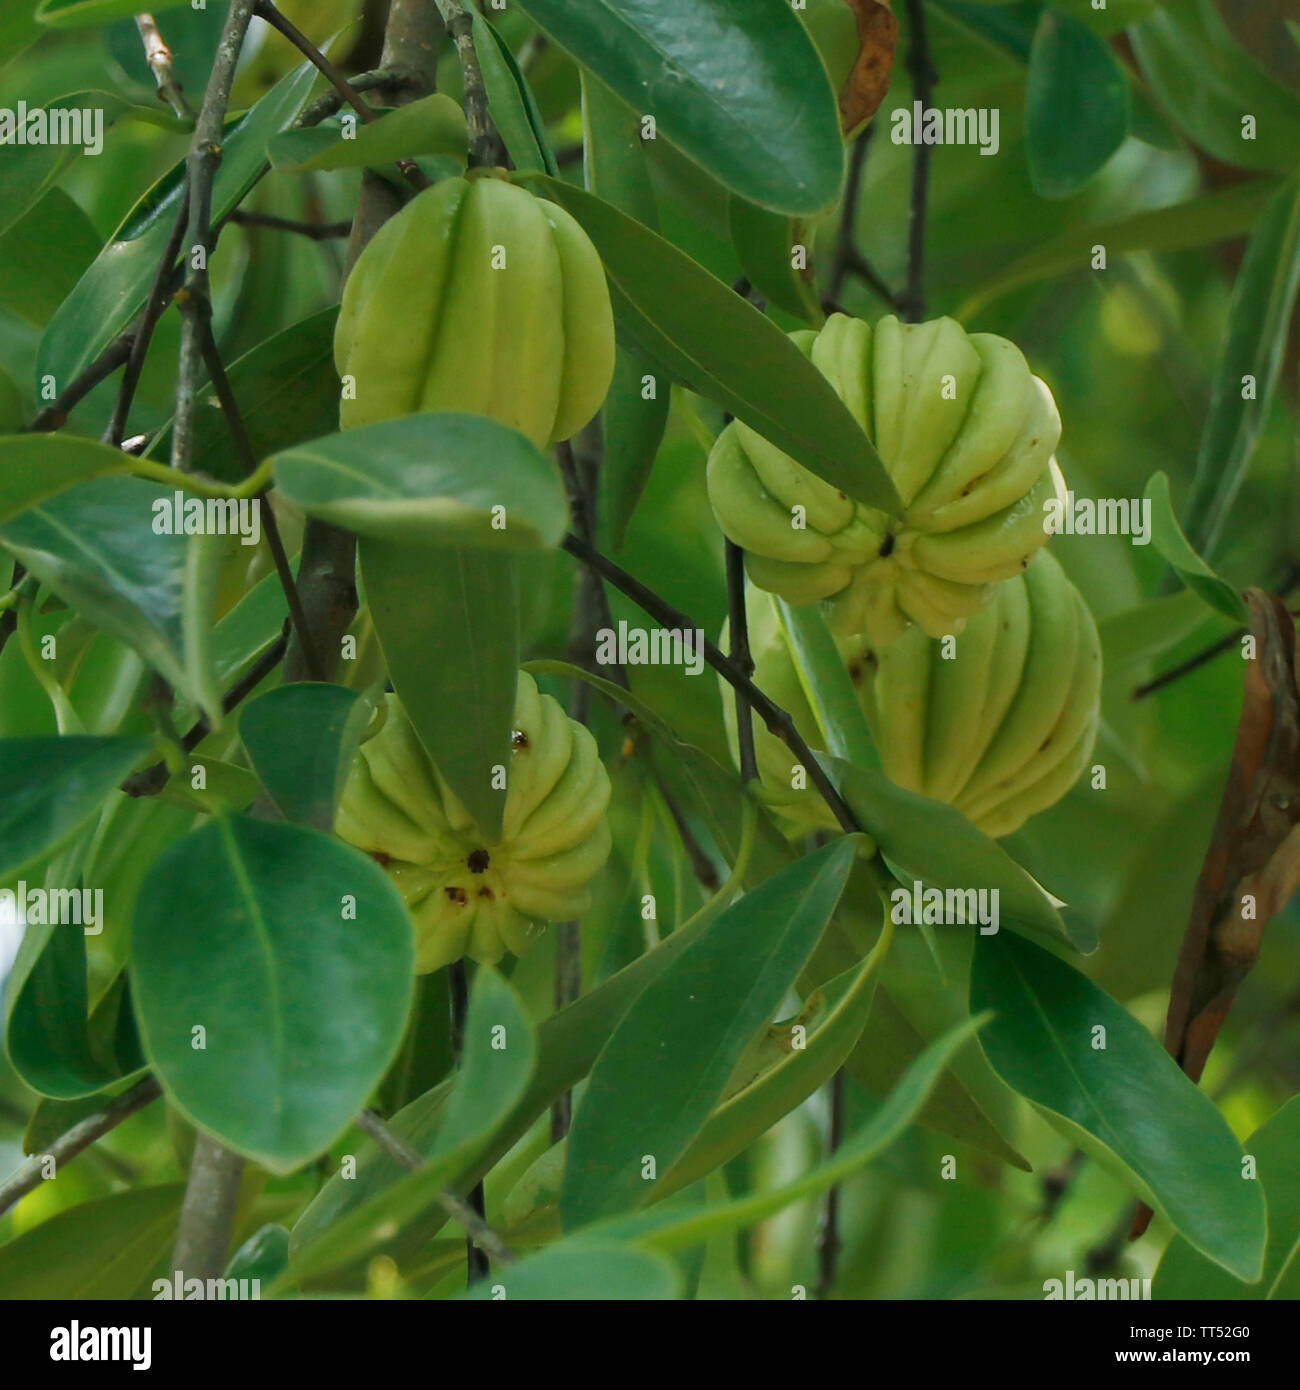 Garcinia Cambogia Fruit High Resolution Stock Photography And